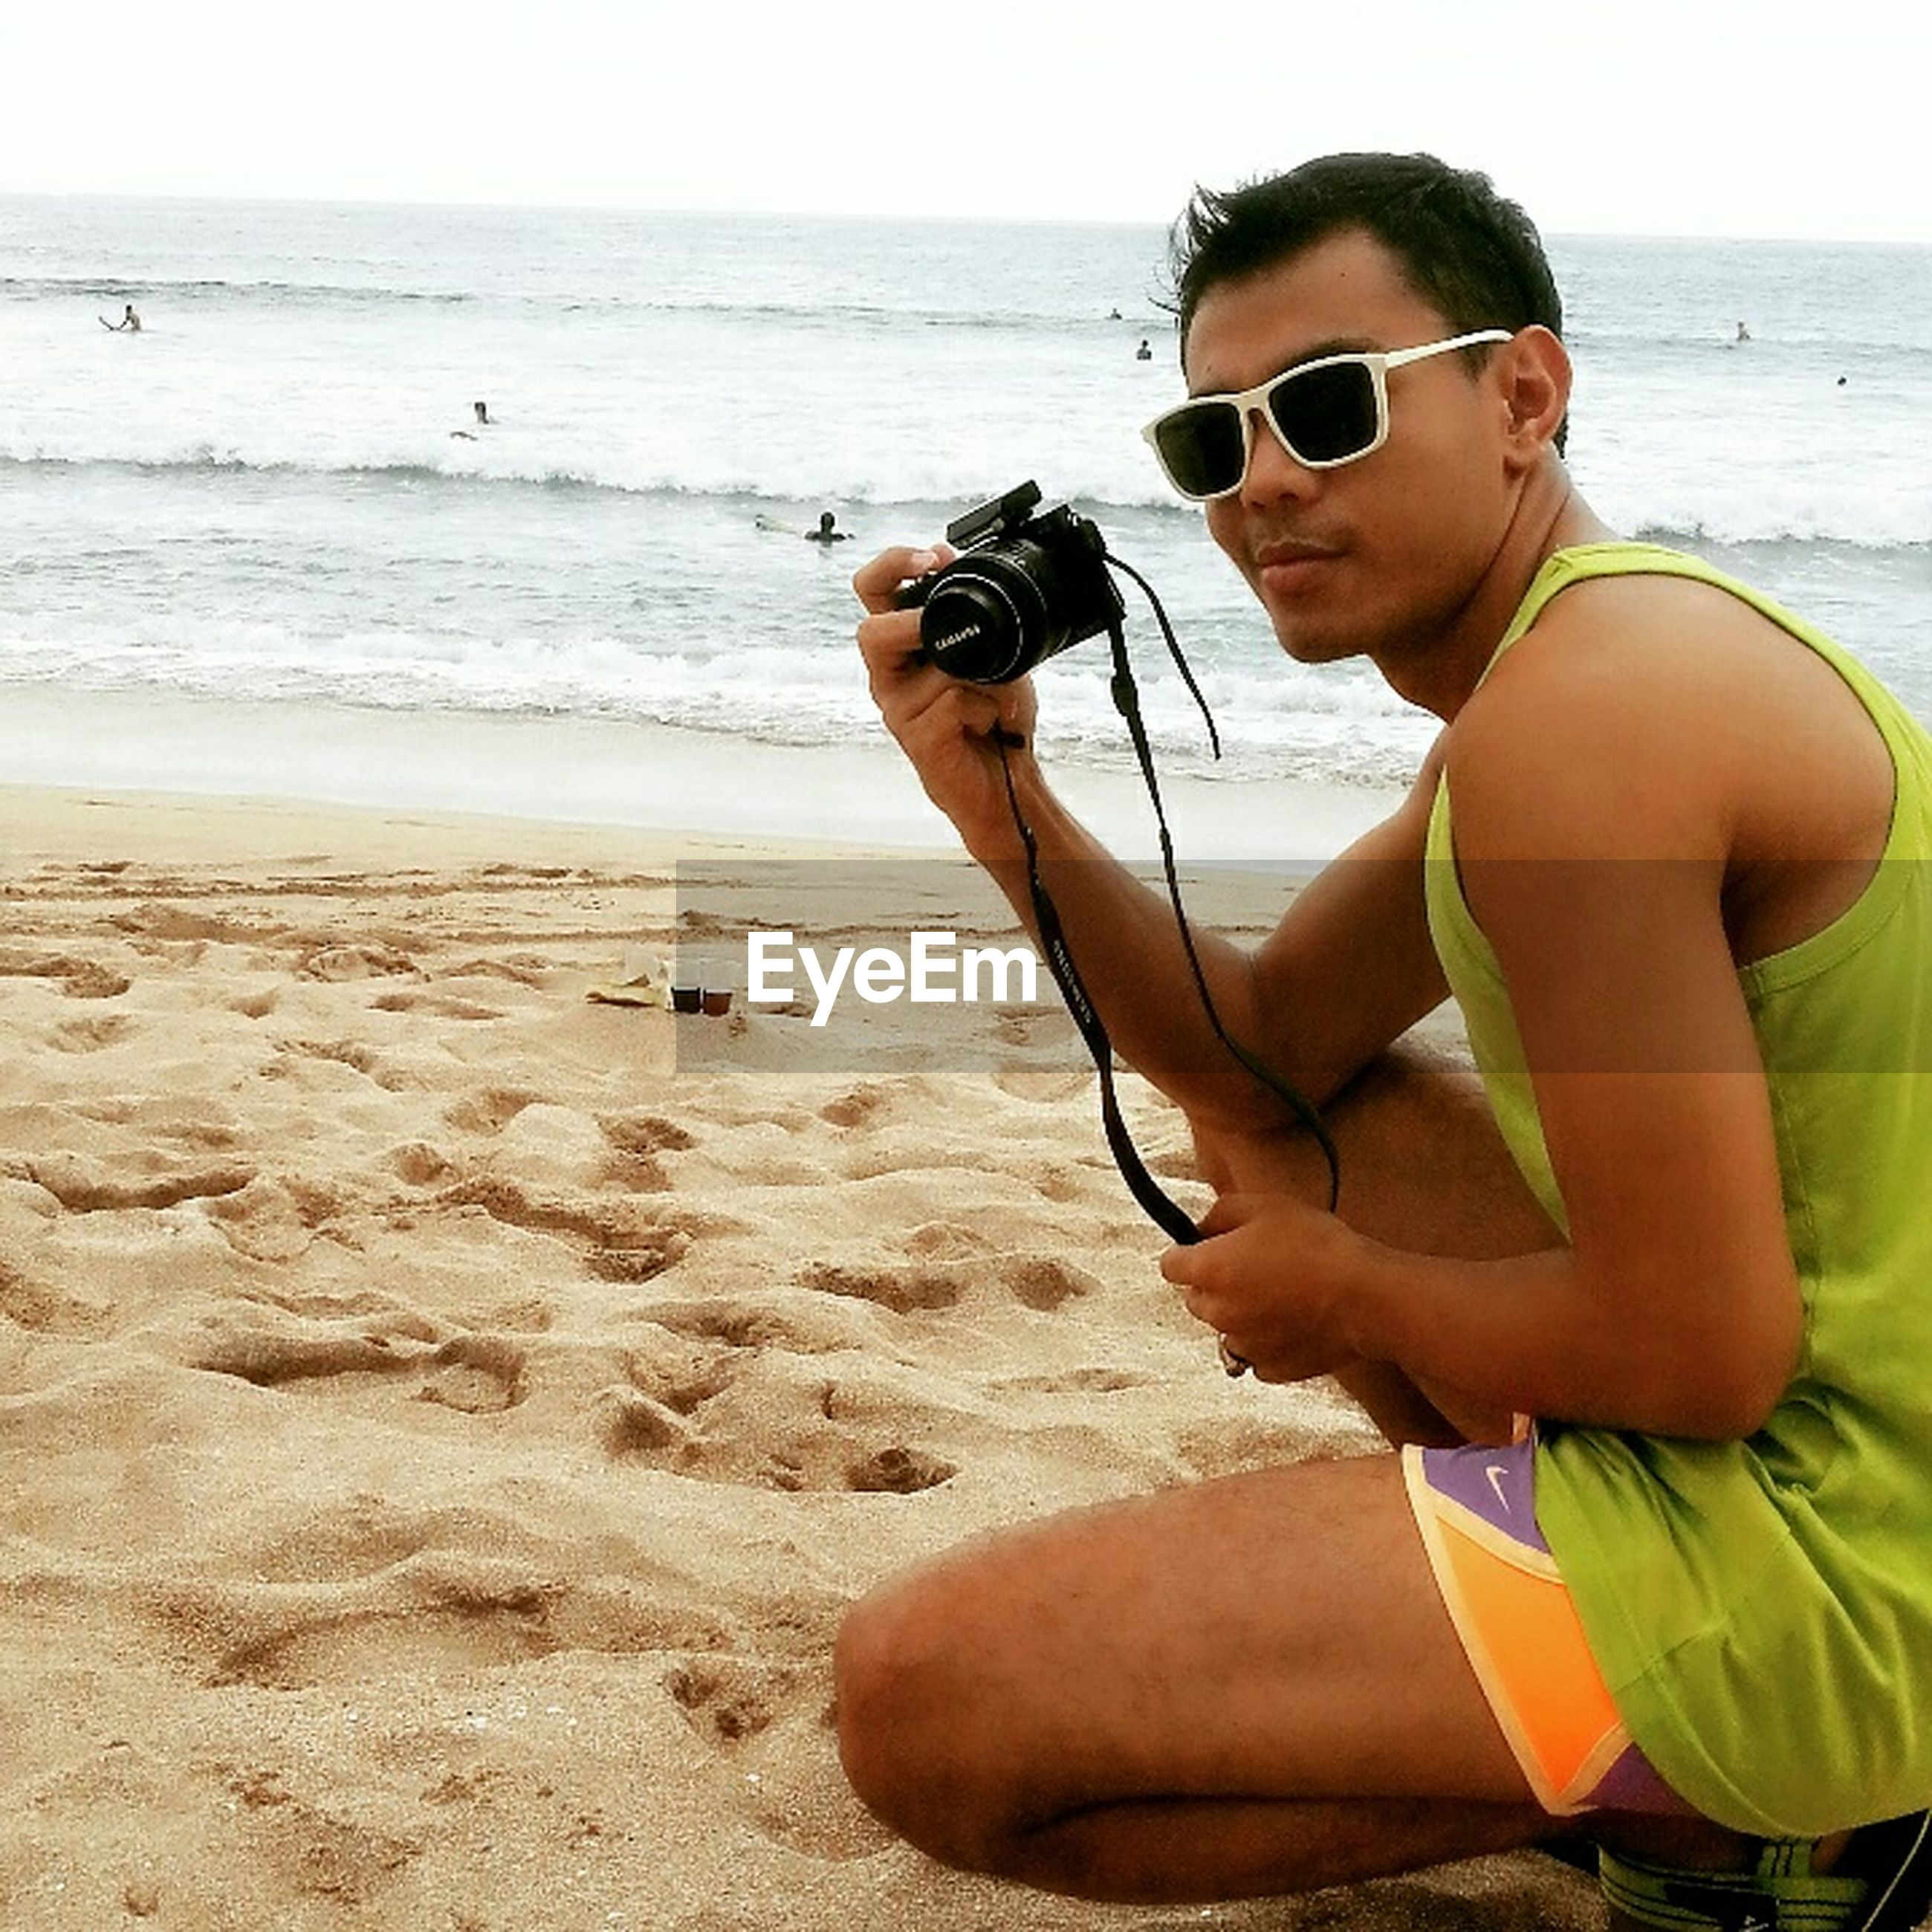 beach, sea, person, young adult, shore, lifestyles, leisure activity, sand, water, horizon over water, sunglasses, vacations, young women, full length, portrait, shirtless, looking at camera, enjoyment